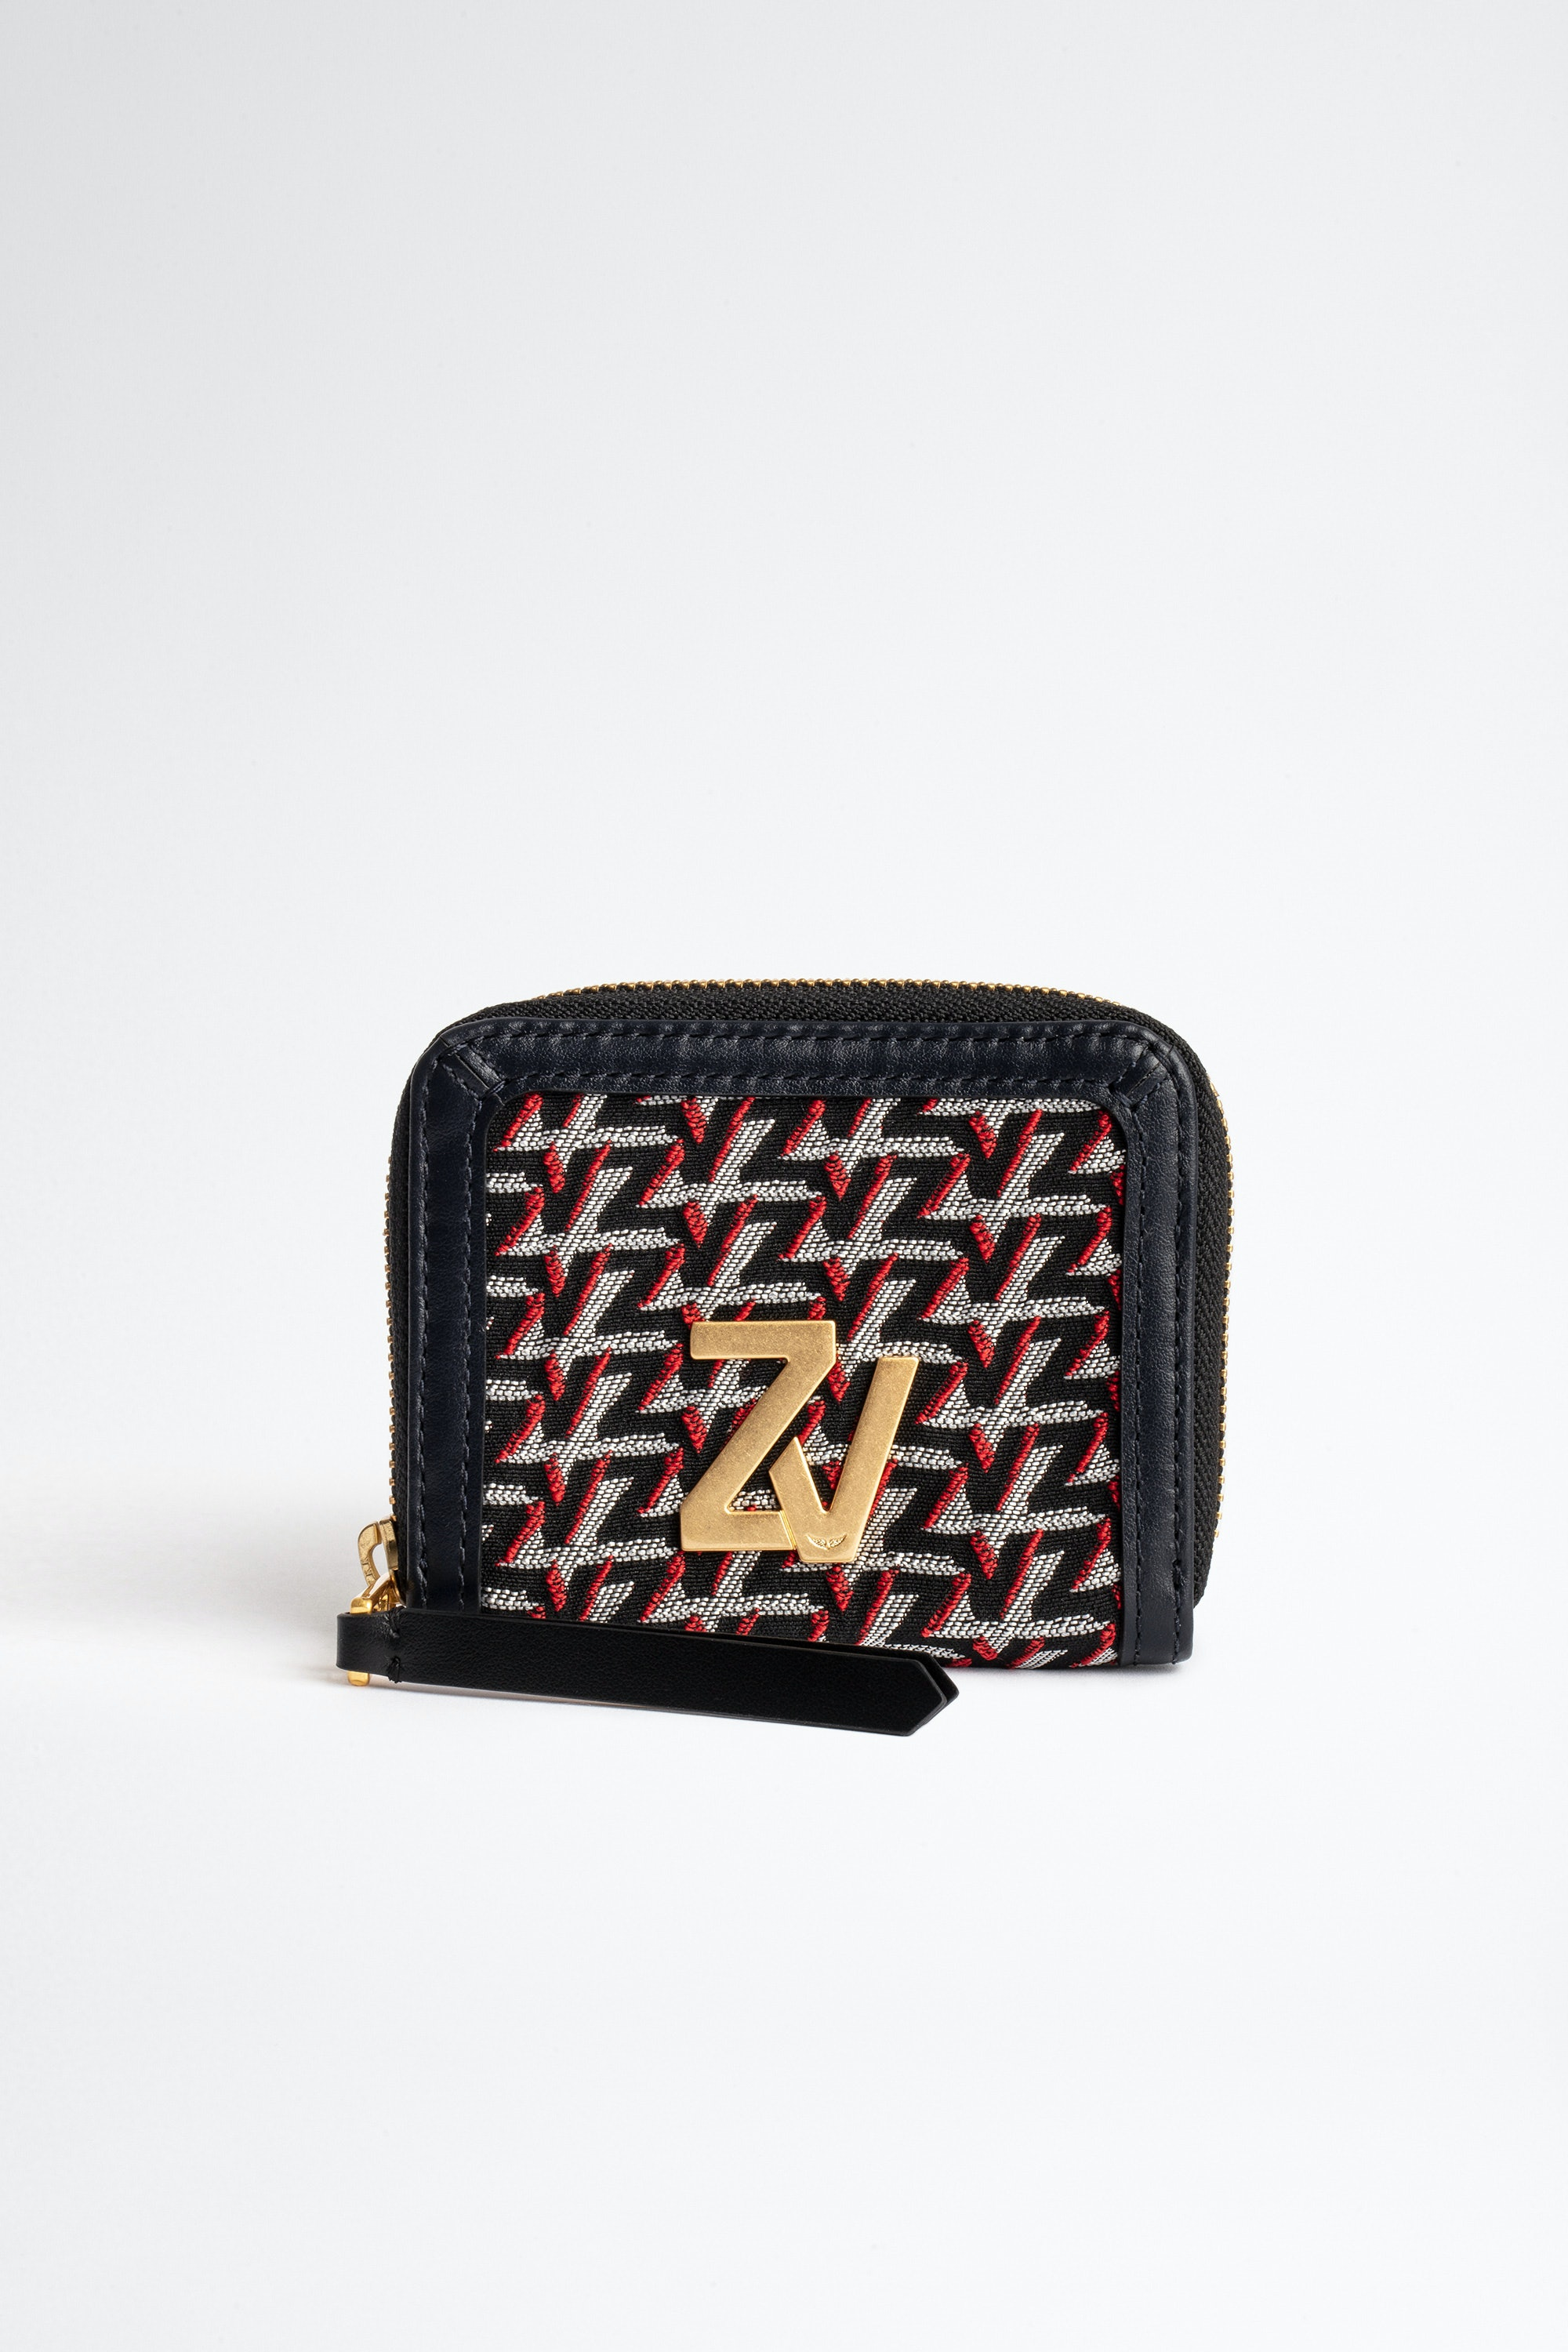 ZV Initiale Le Compact Monogram Coin Purse